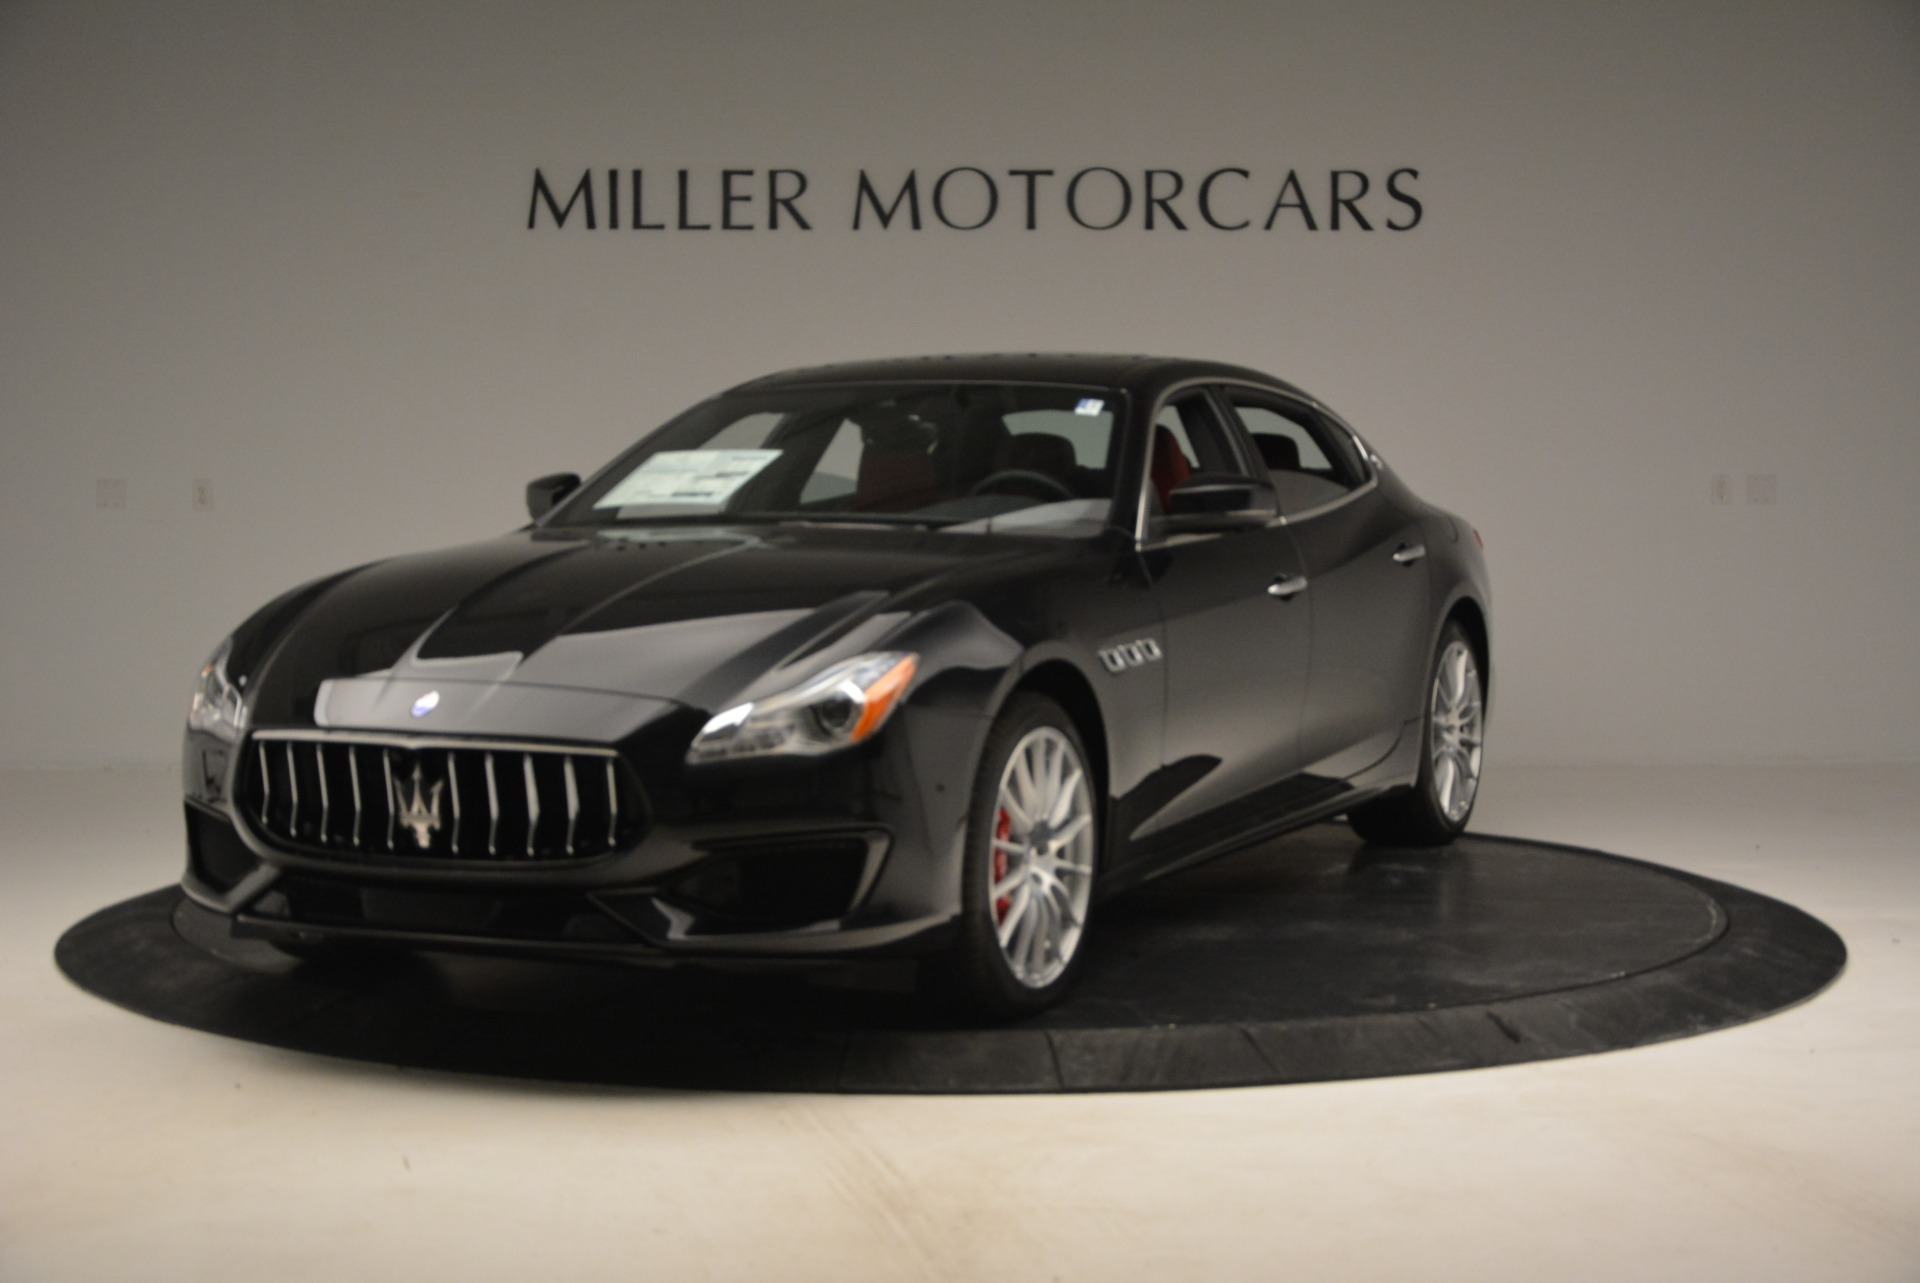 New 2017 Maserati Quattroporte S Q4 GranSport For Sale In Westport, CT